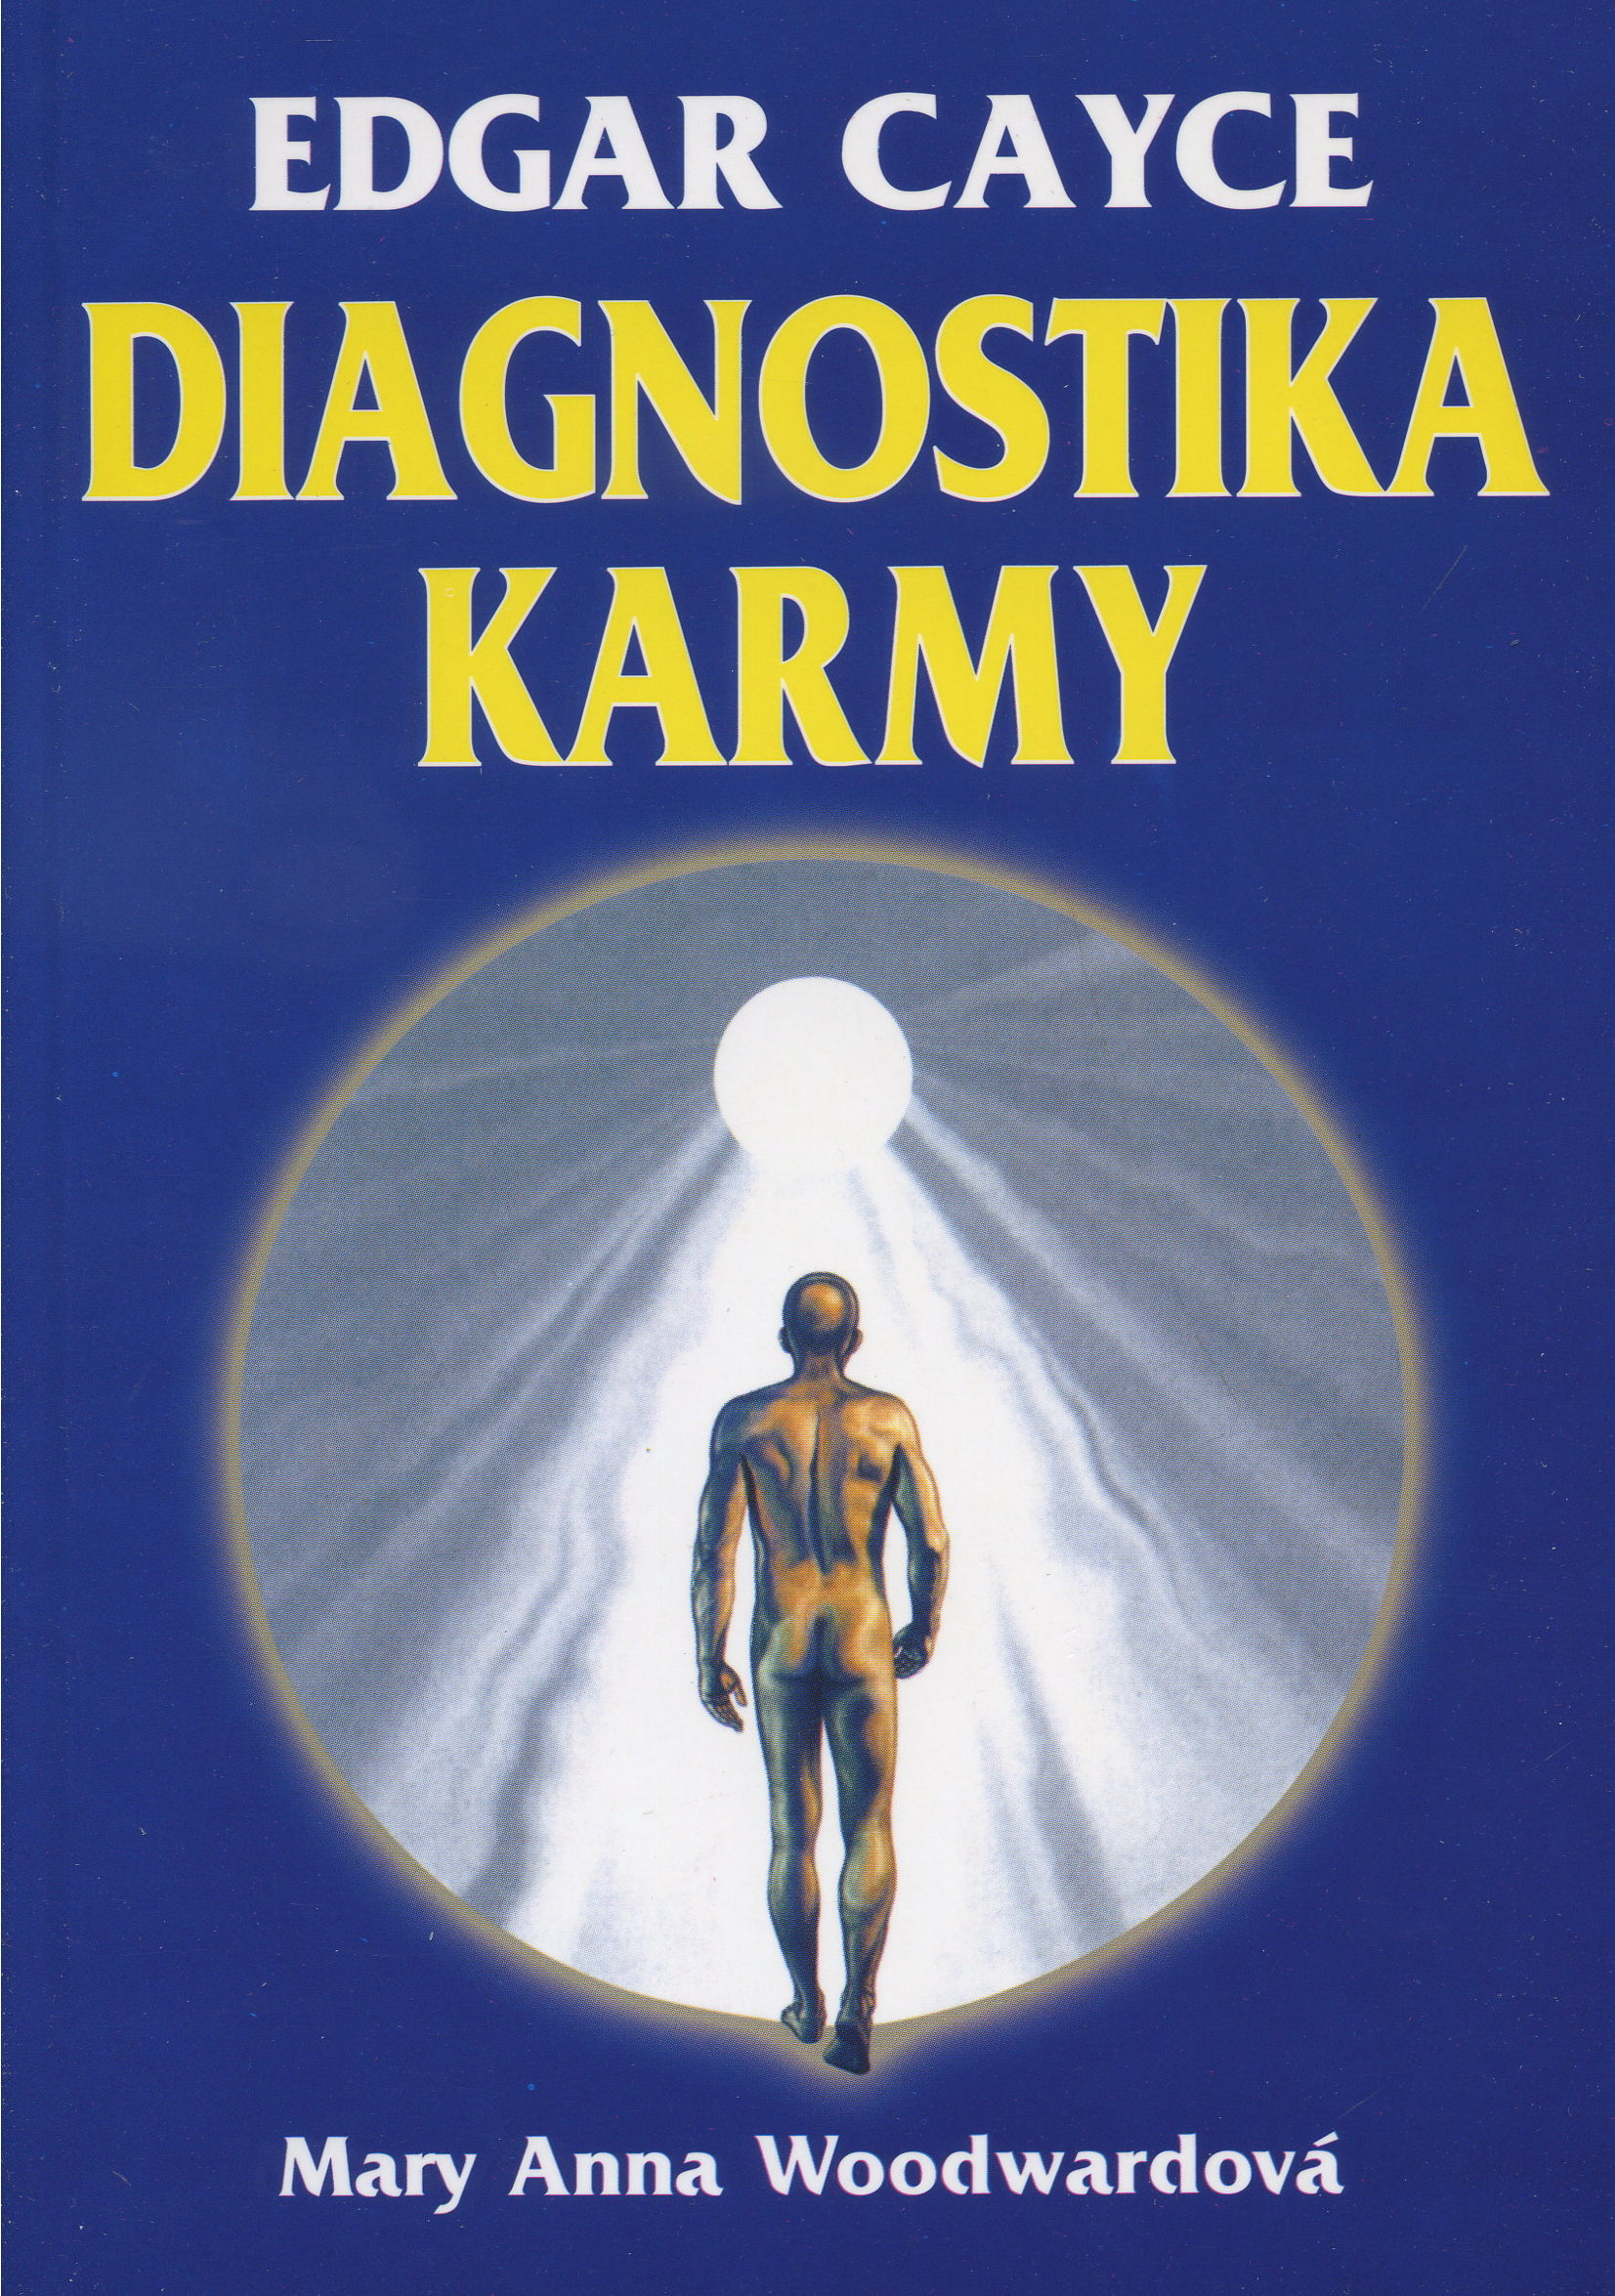 Diagnostika karmy - Edgar Cayce